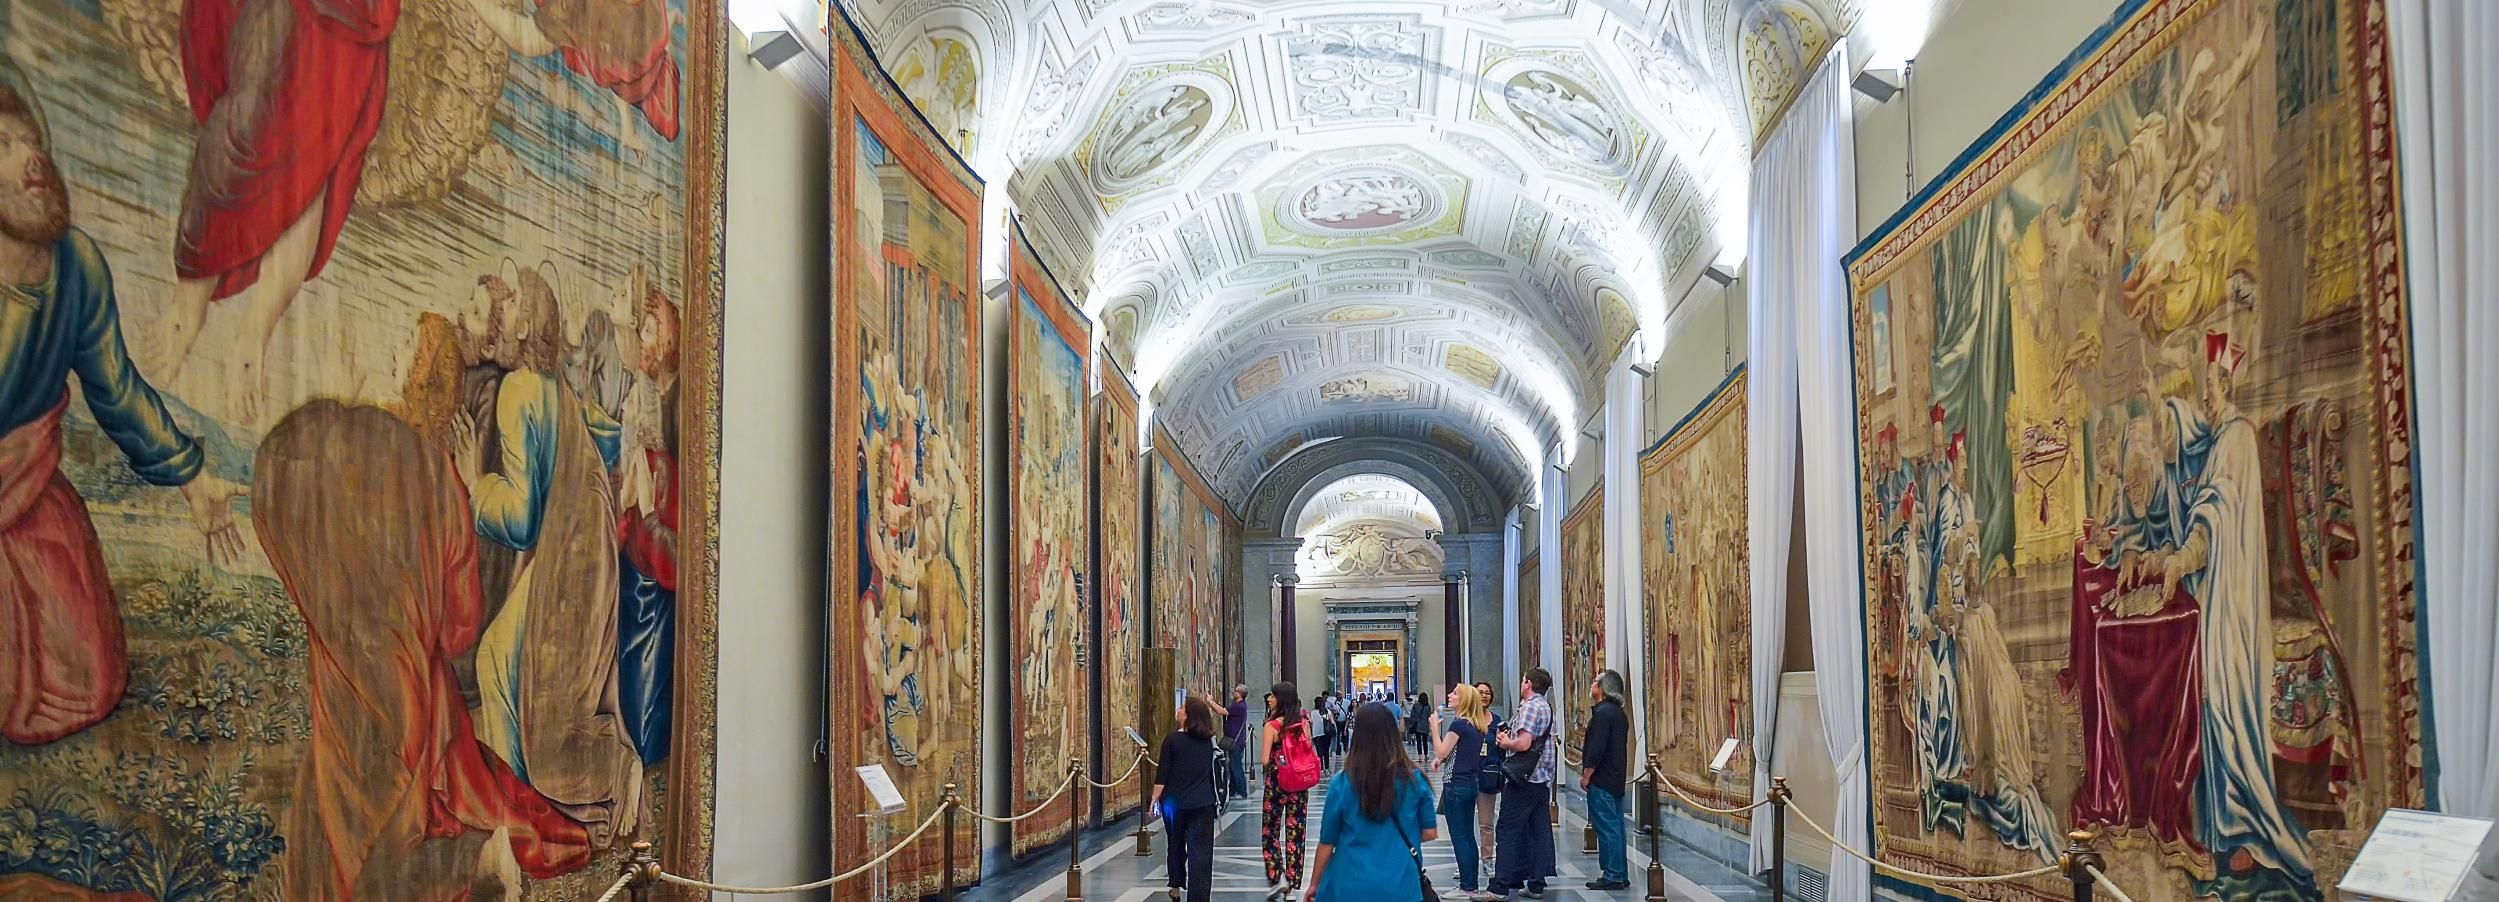 Fast Track: Sistine Chapel & St. Peter's Basilica